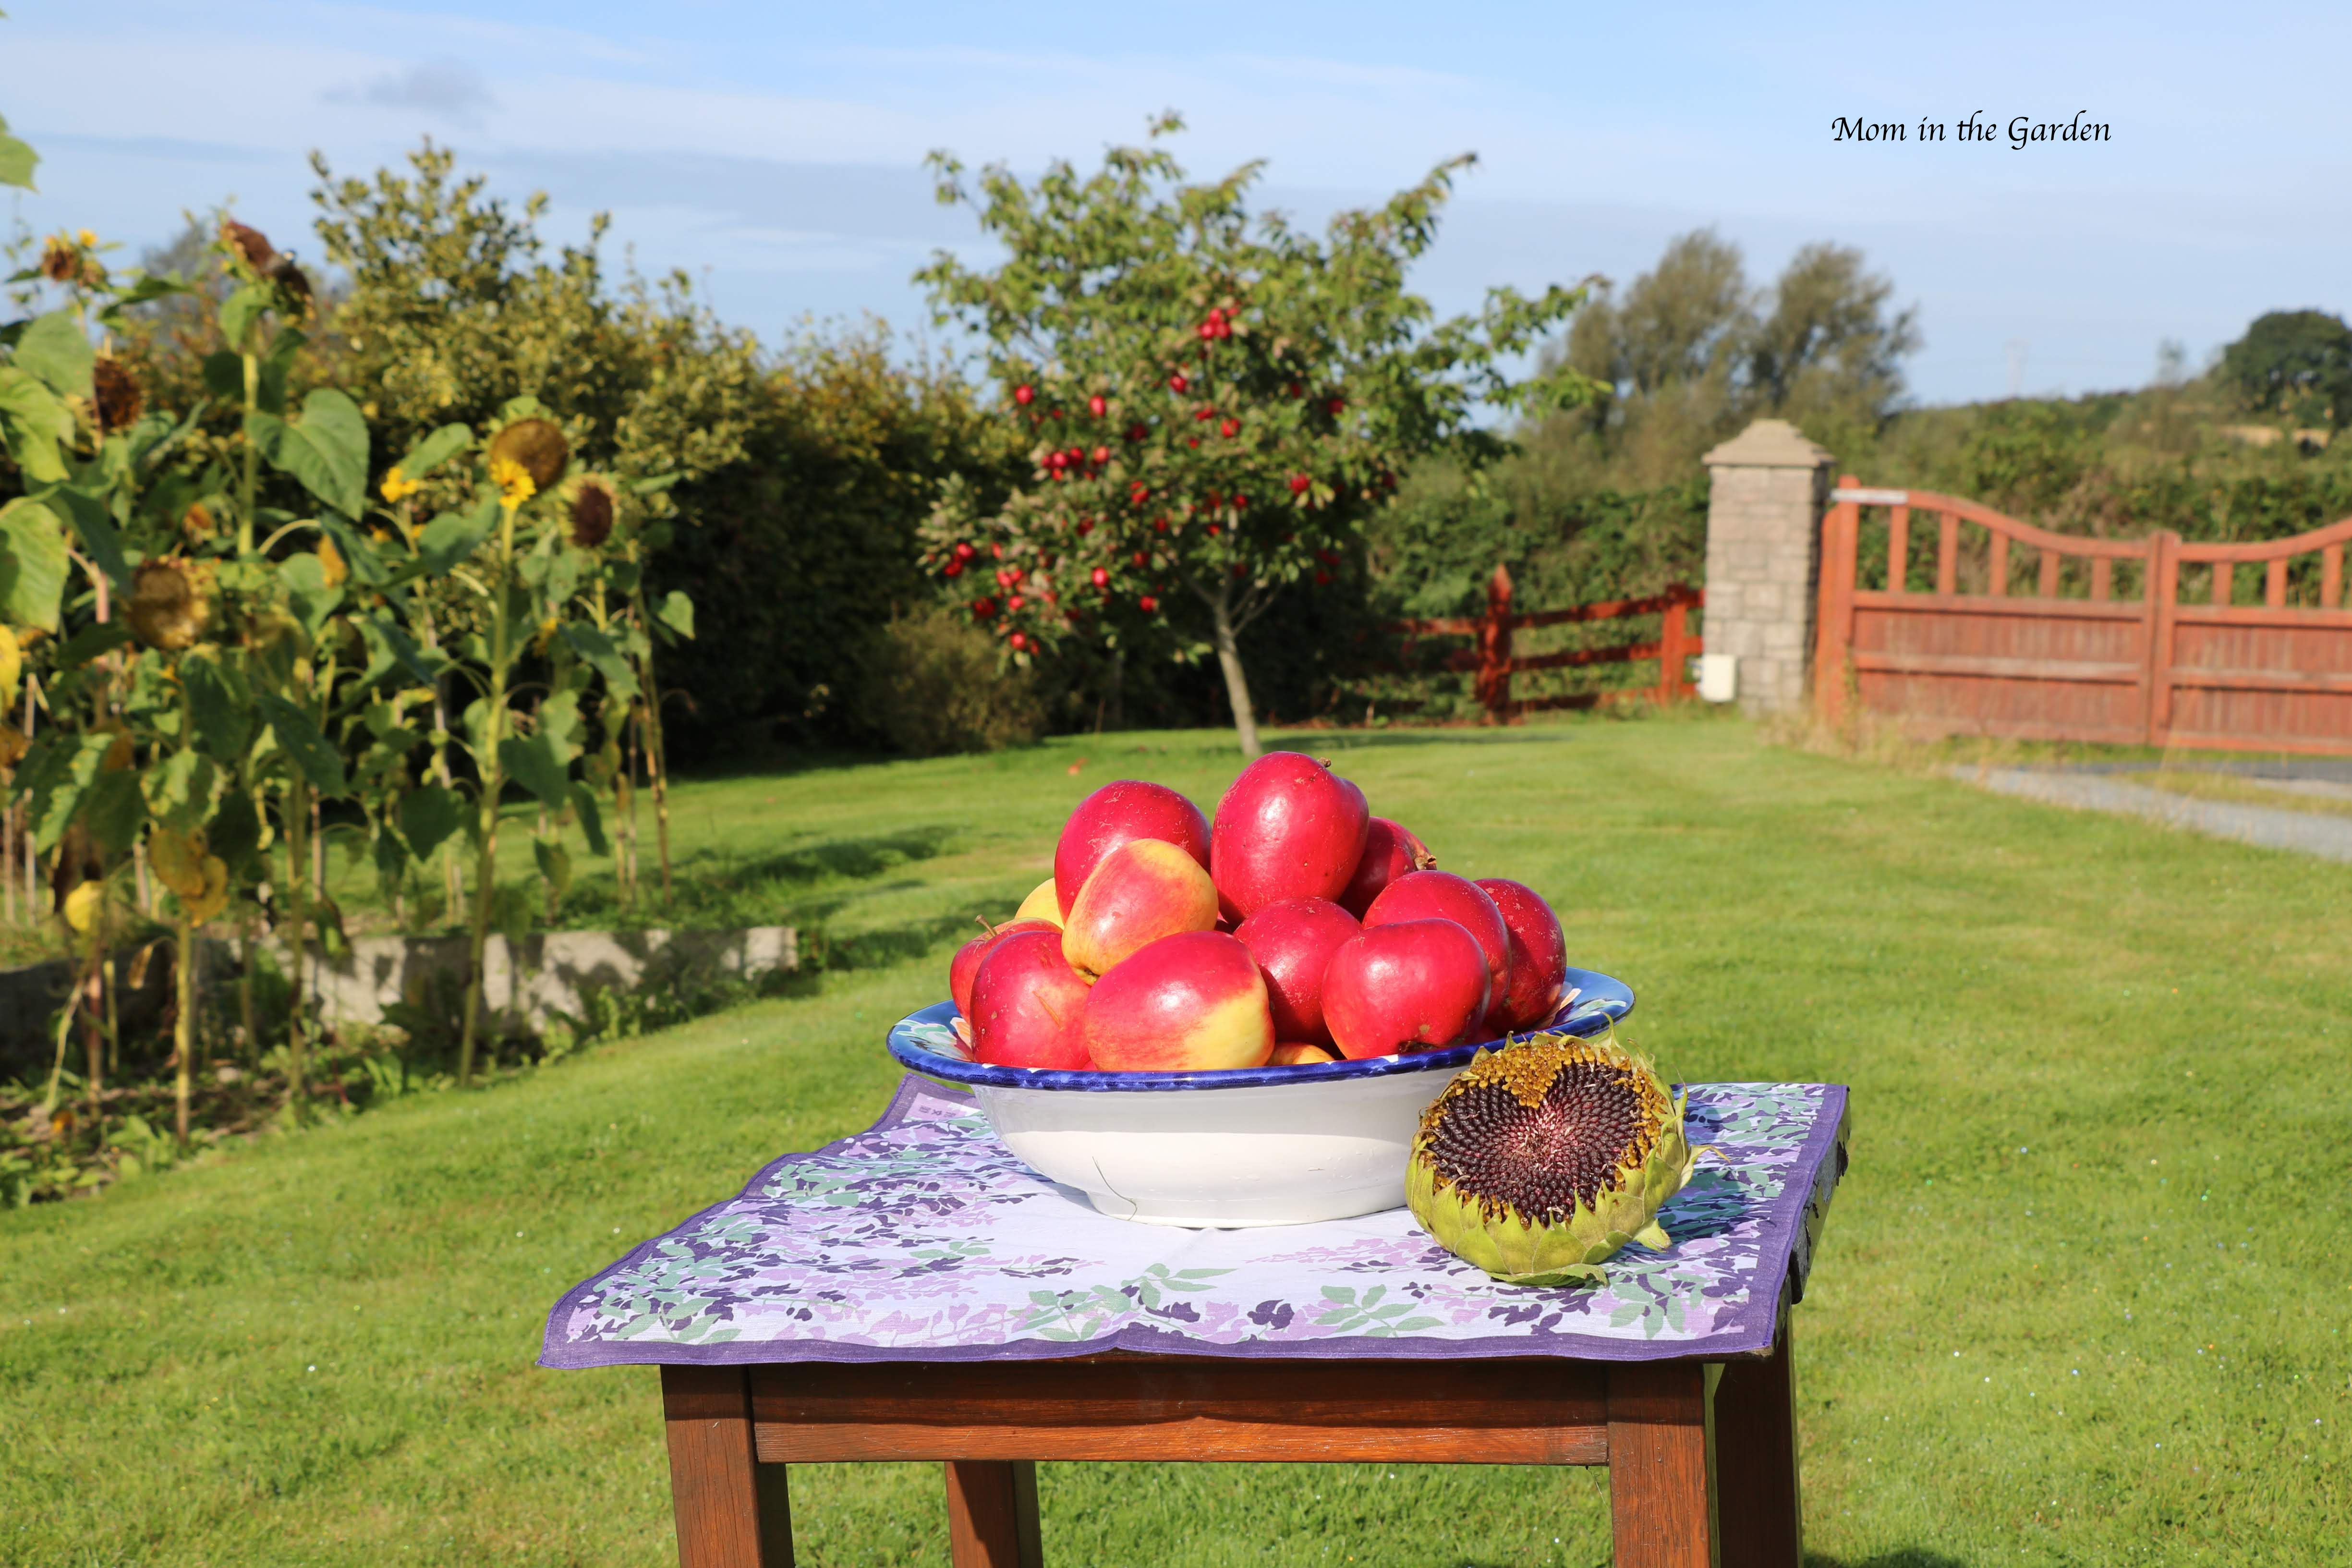 Apple tree + bowl of apples + sunflowers Sept 10